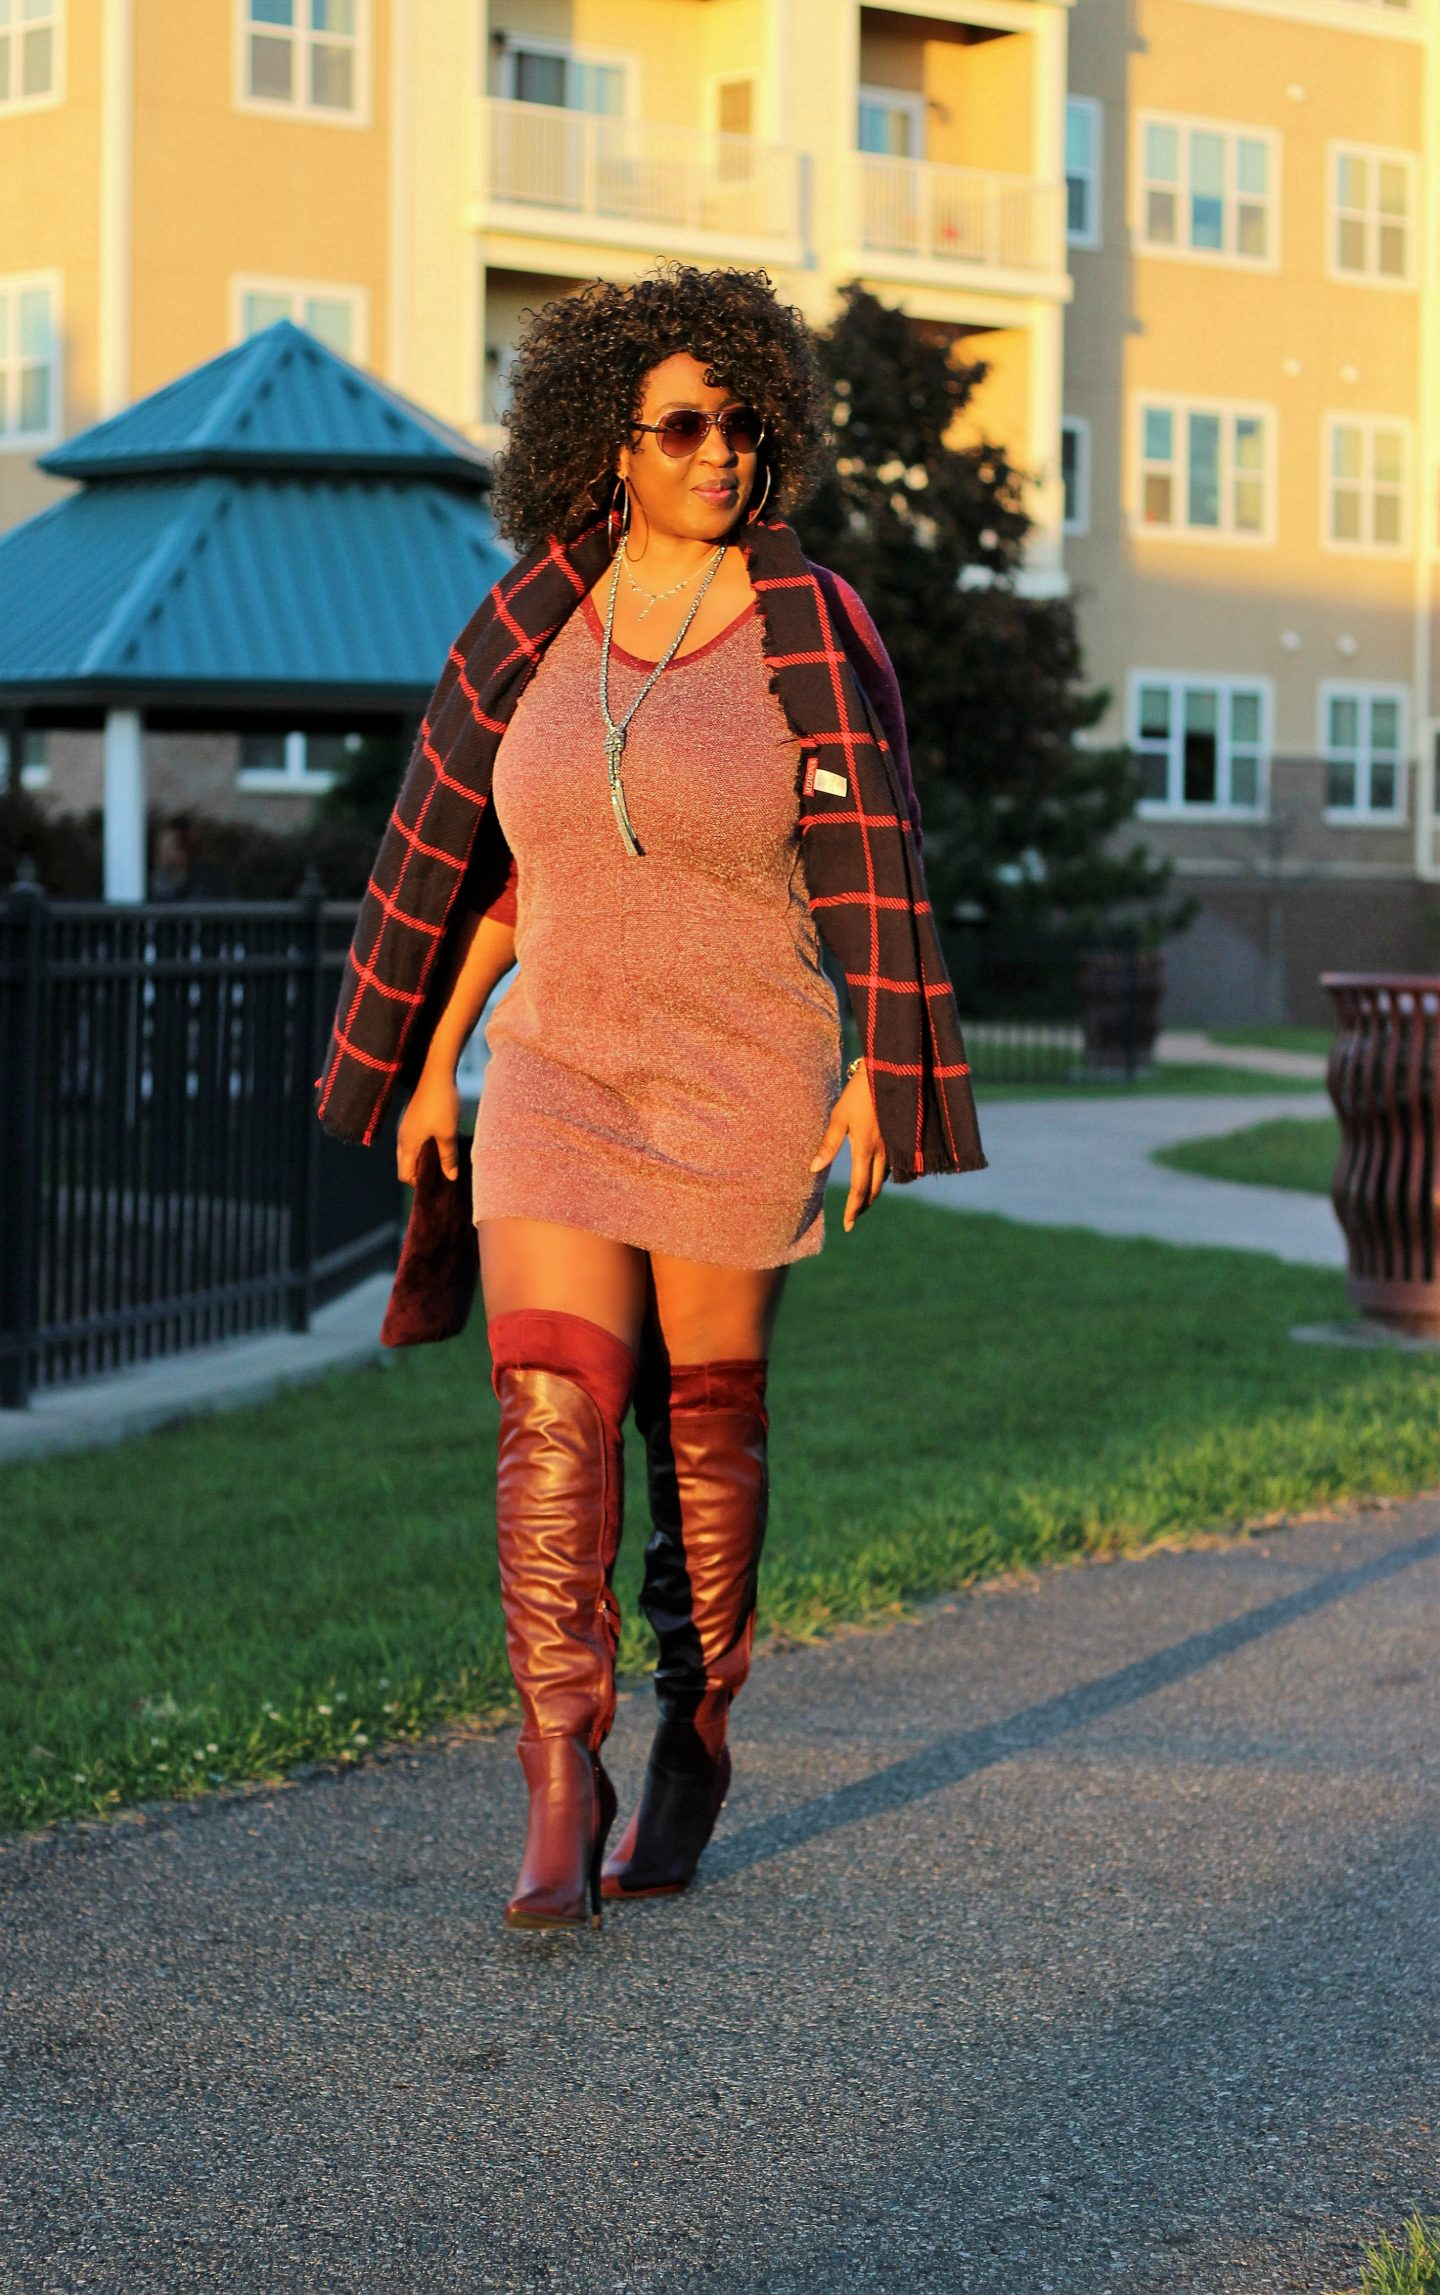 burgudy-tunic-and-boots-and-plaid-for-fall5